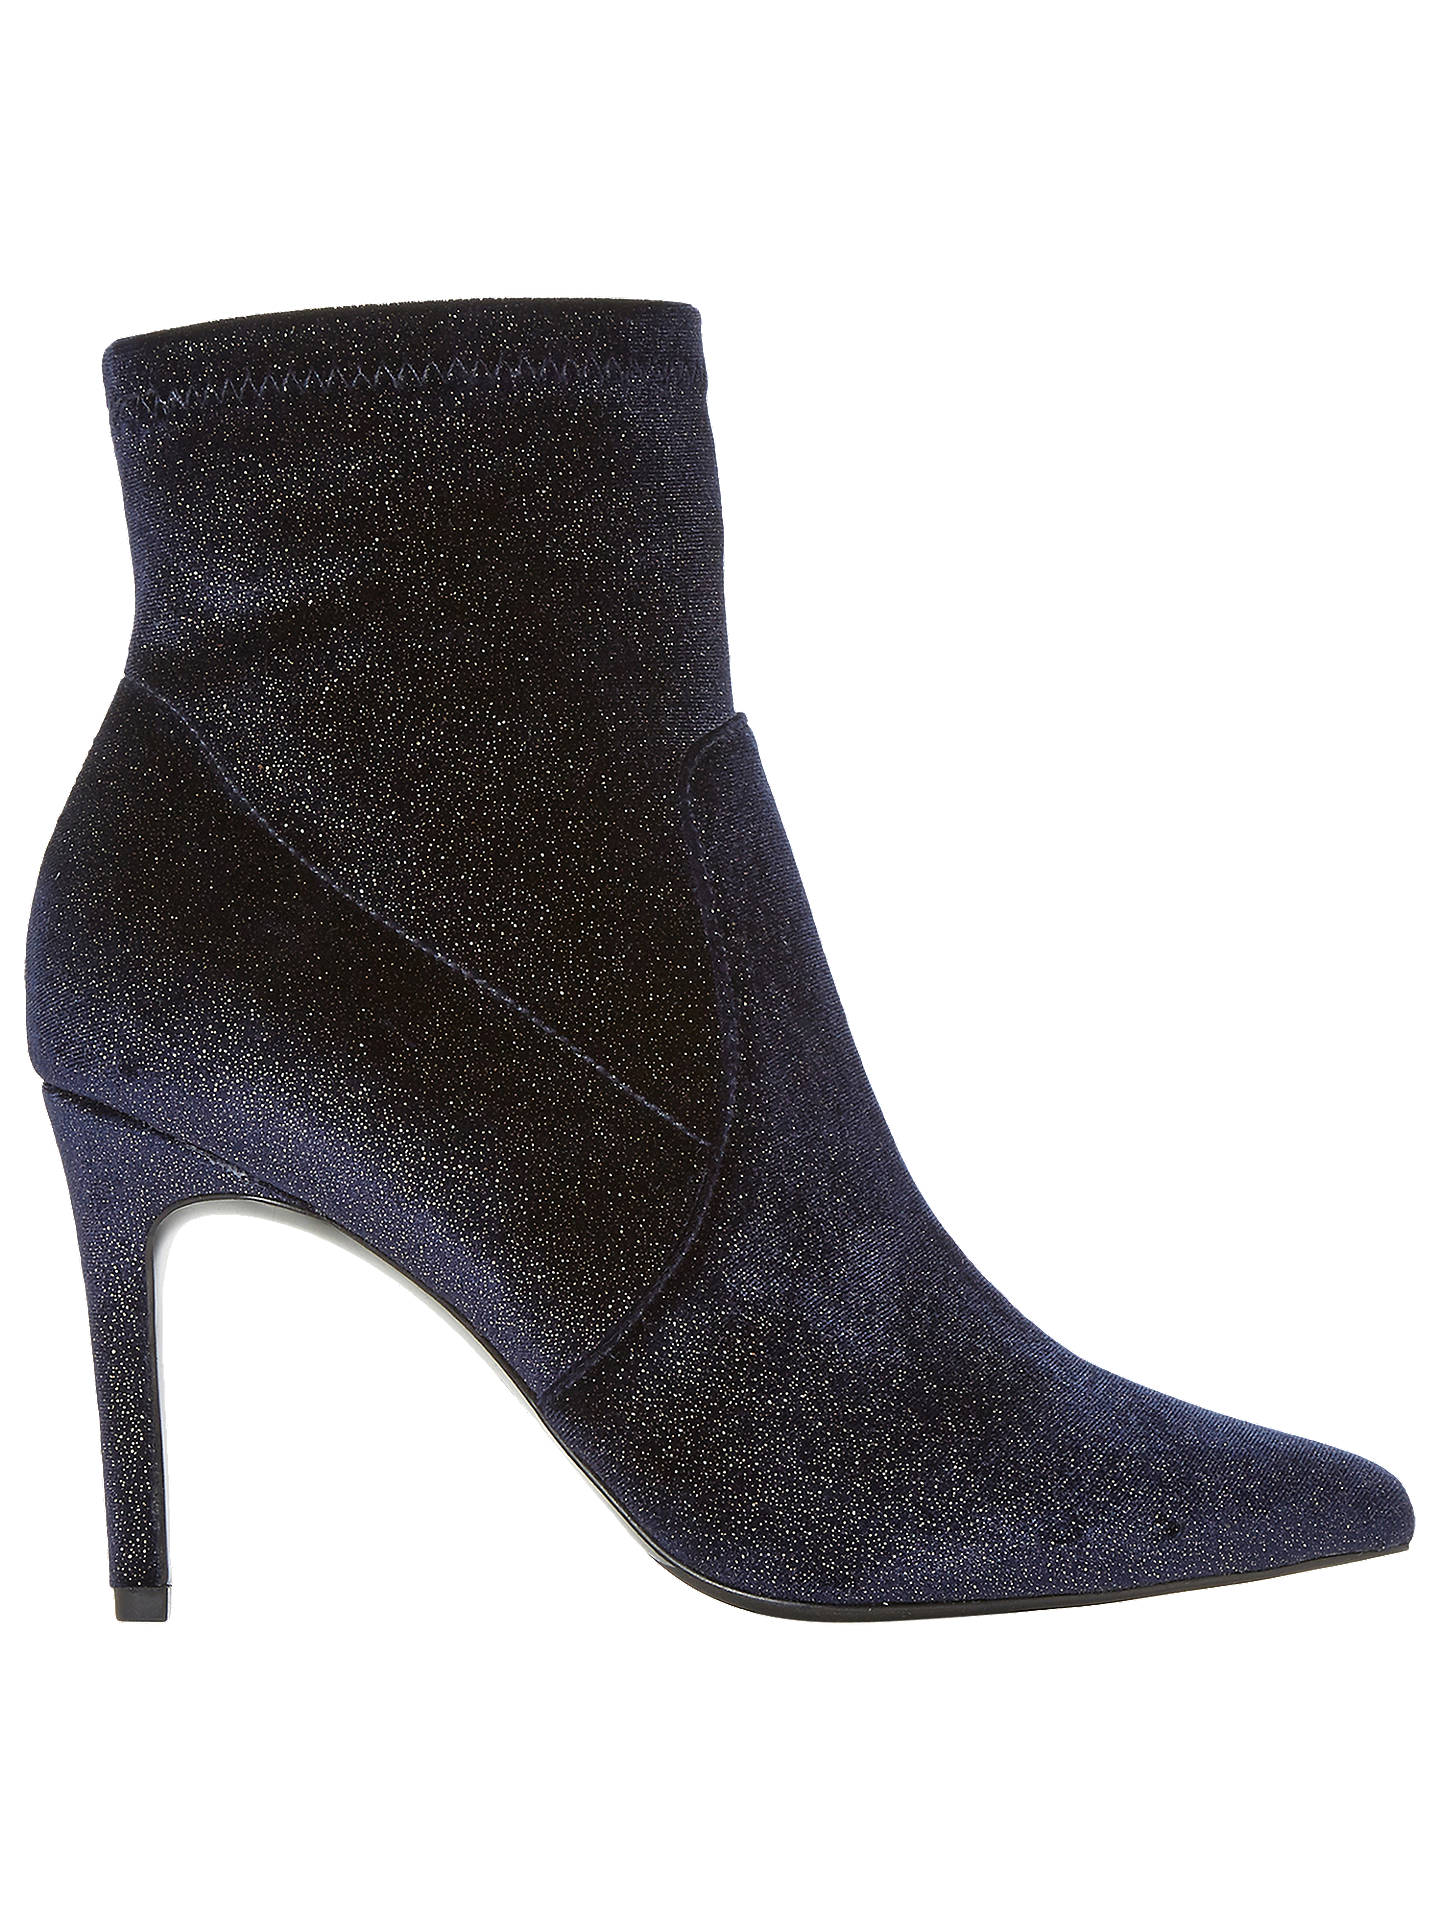 BuyDune Ormand Glitter Stiletto Heeled Ankle Boots, Navy, 3 Online at johnlewis.com